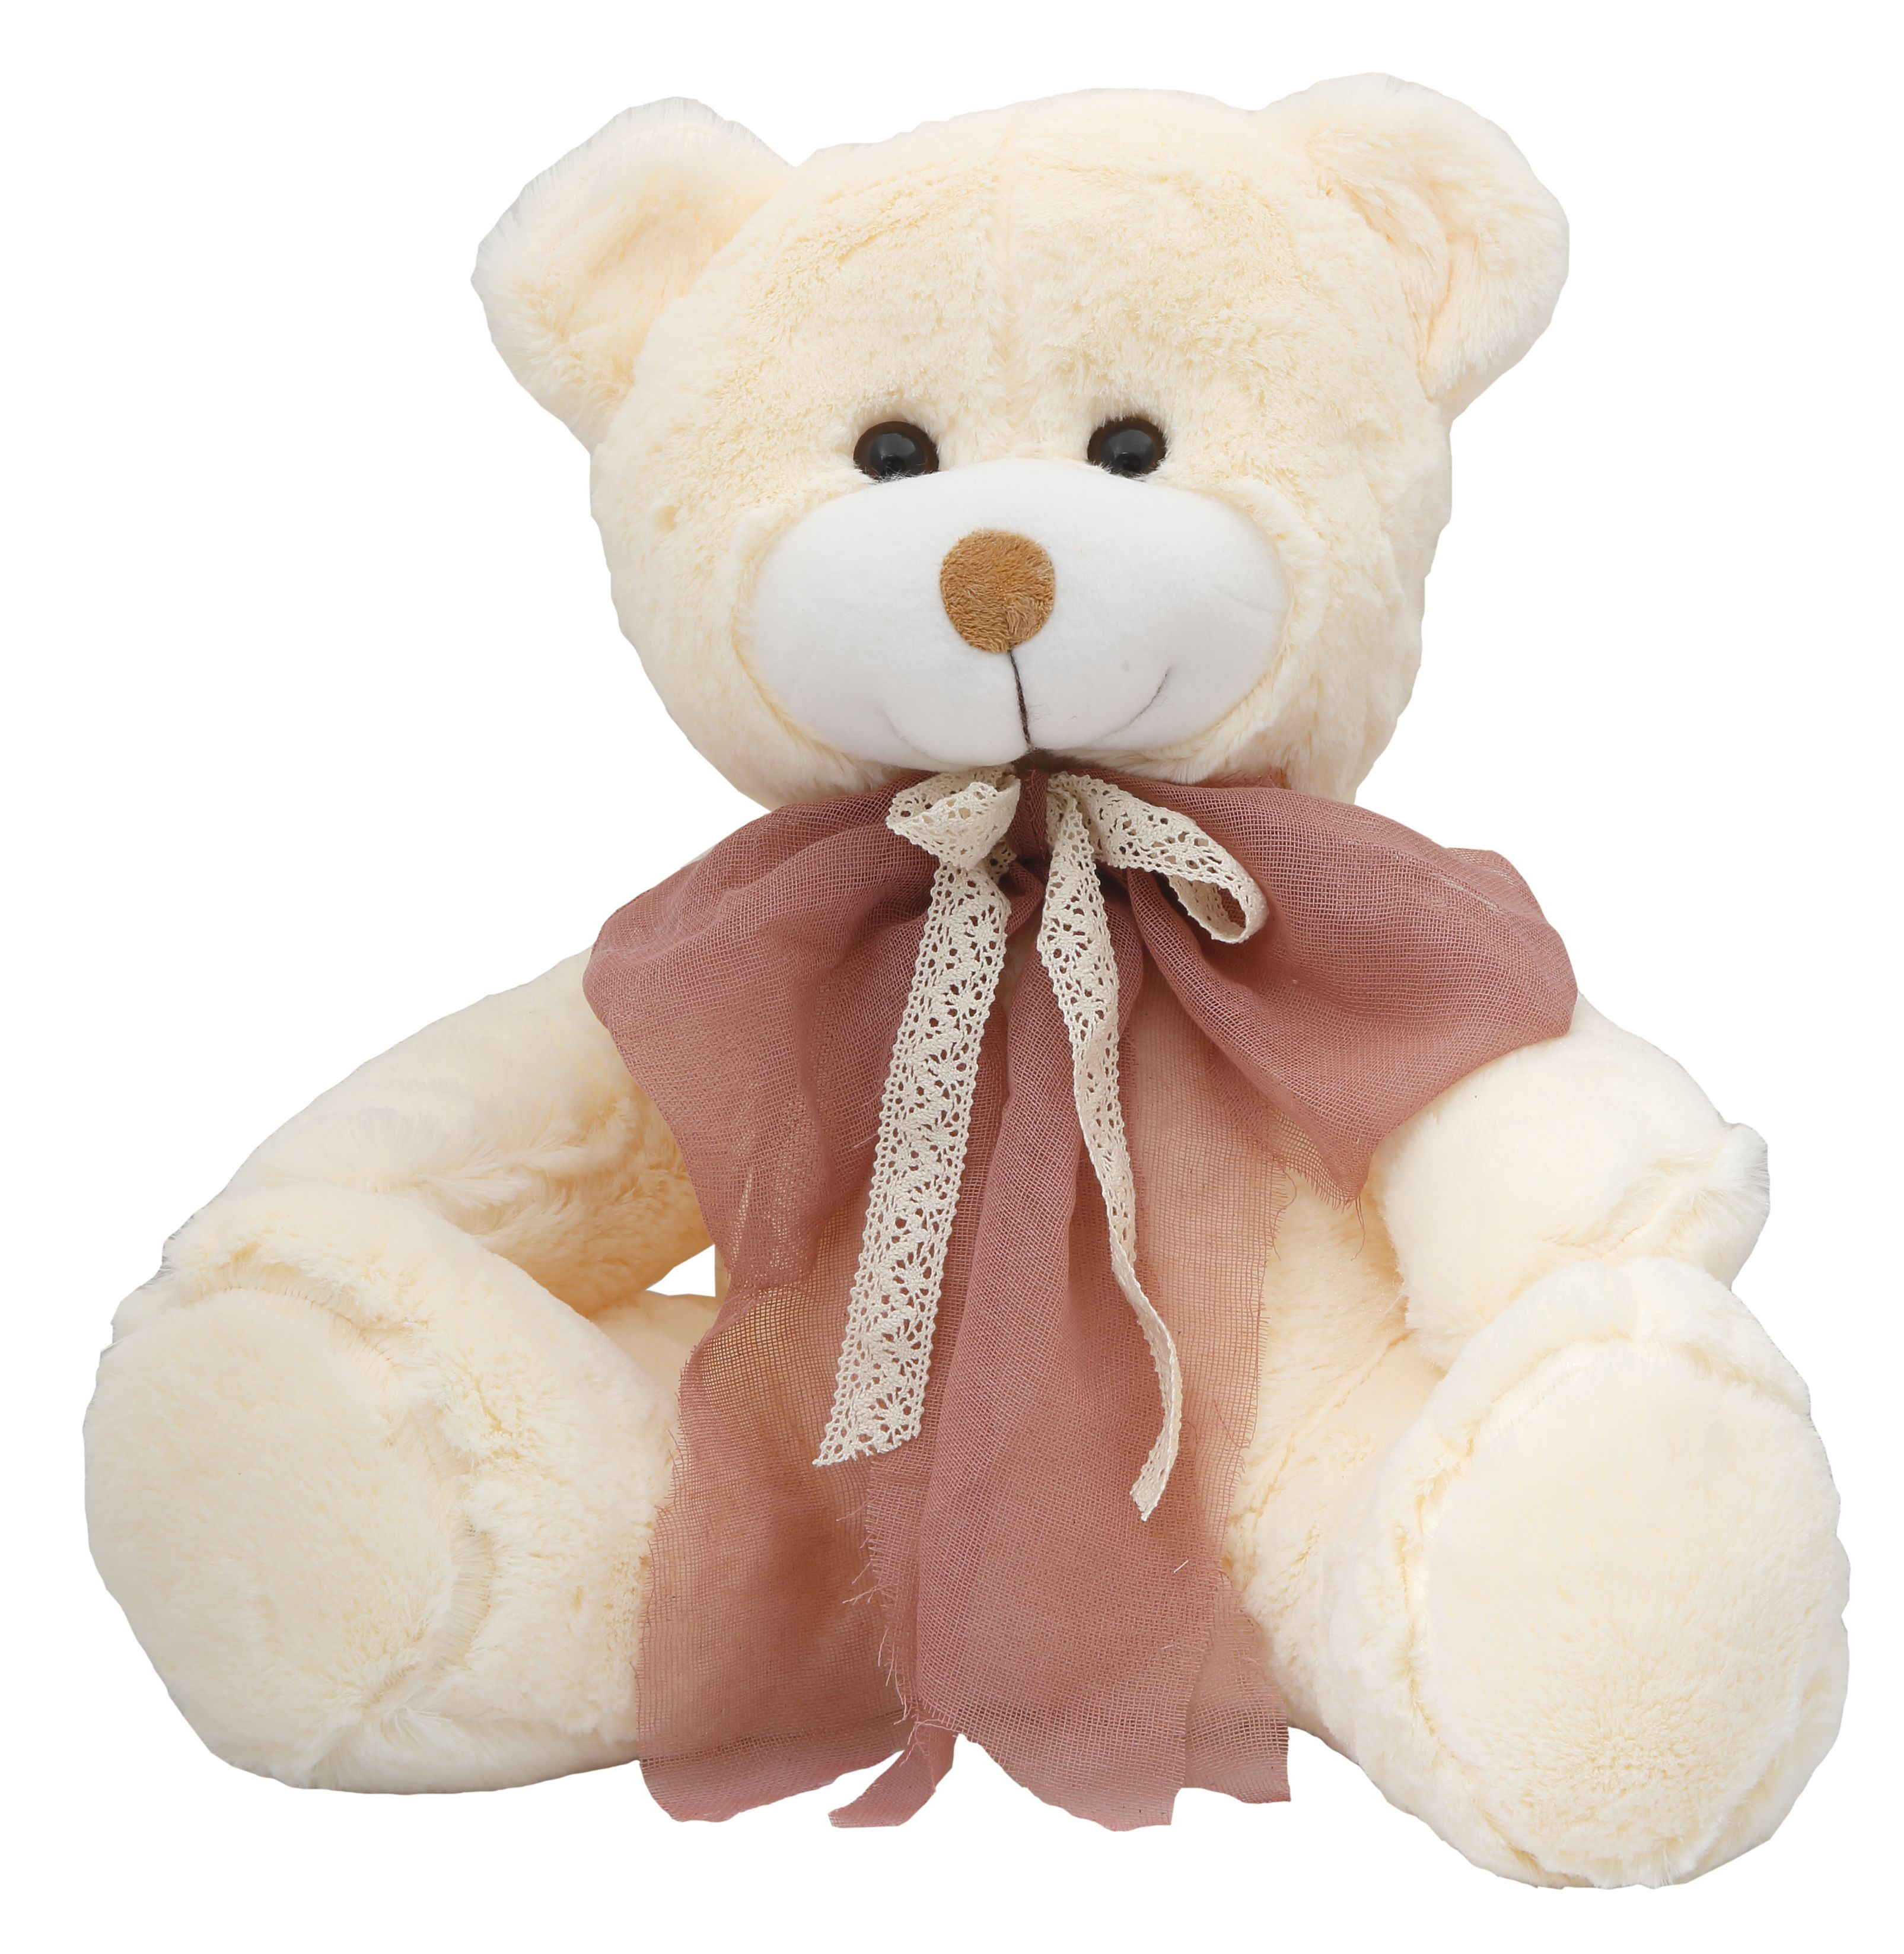 They'll go to bed early with this adorable Teddy Bear!